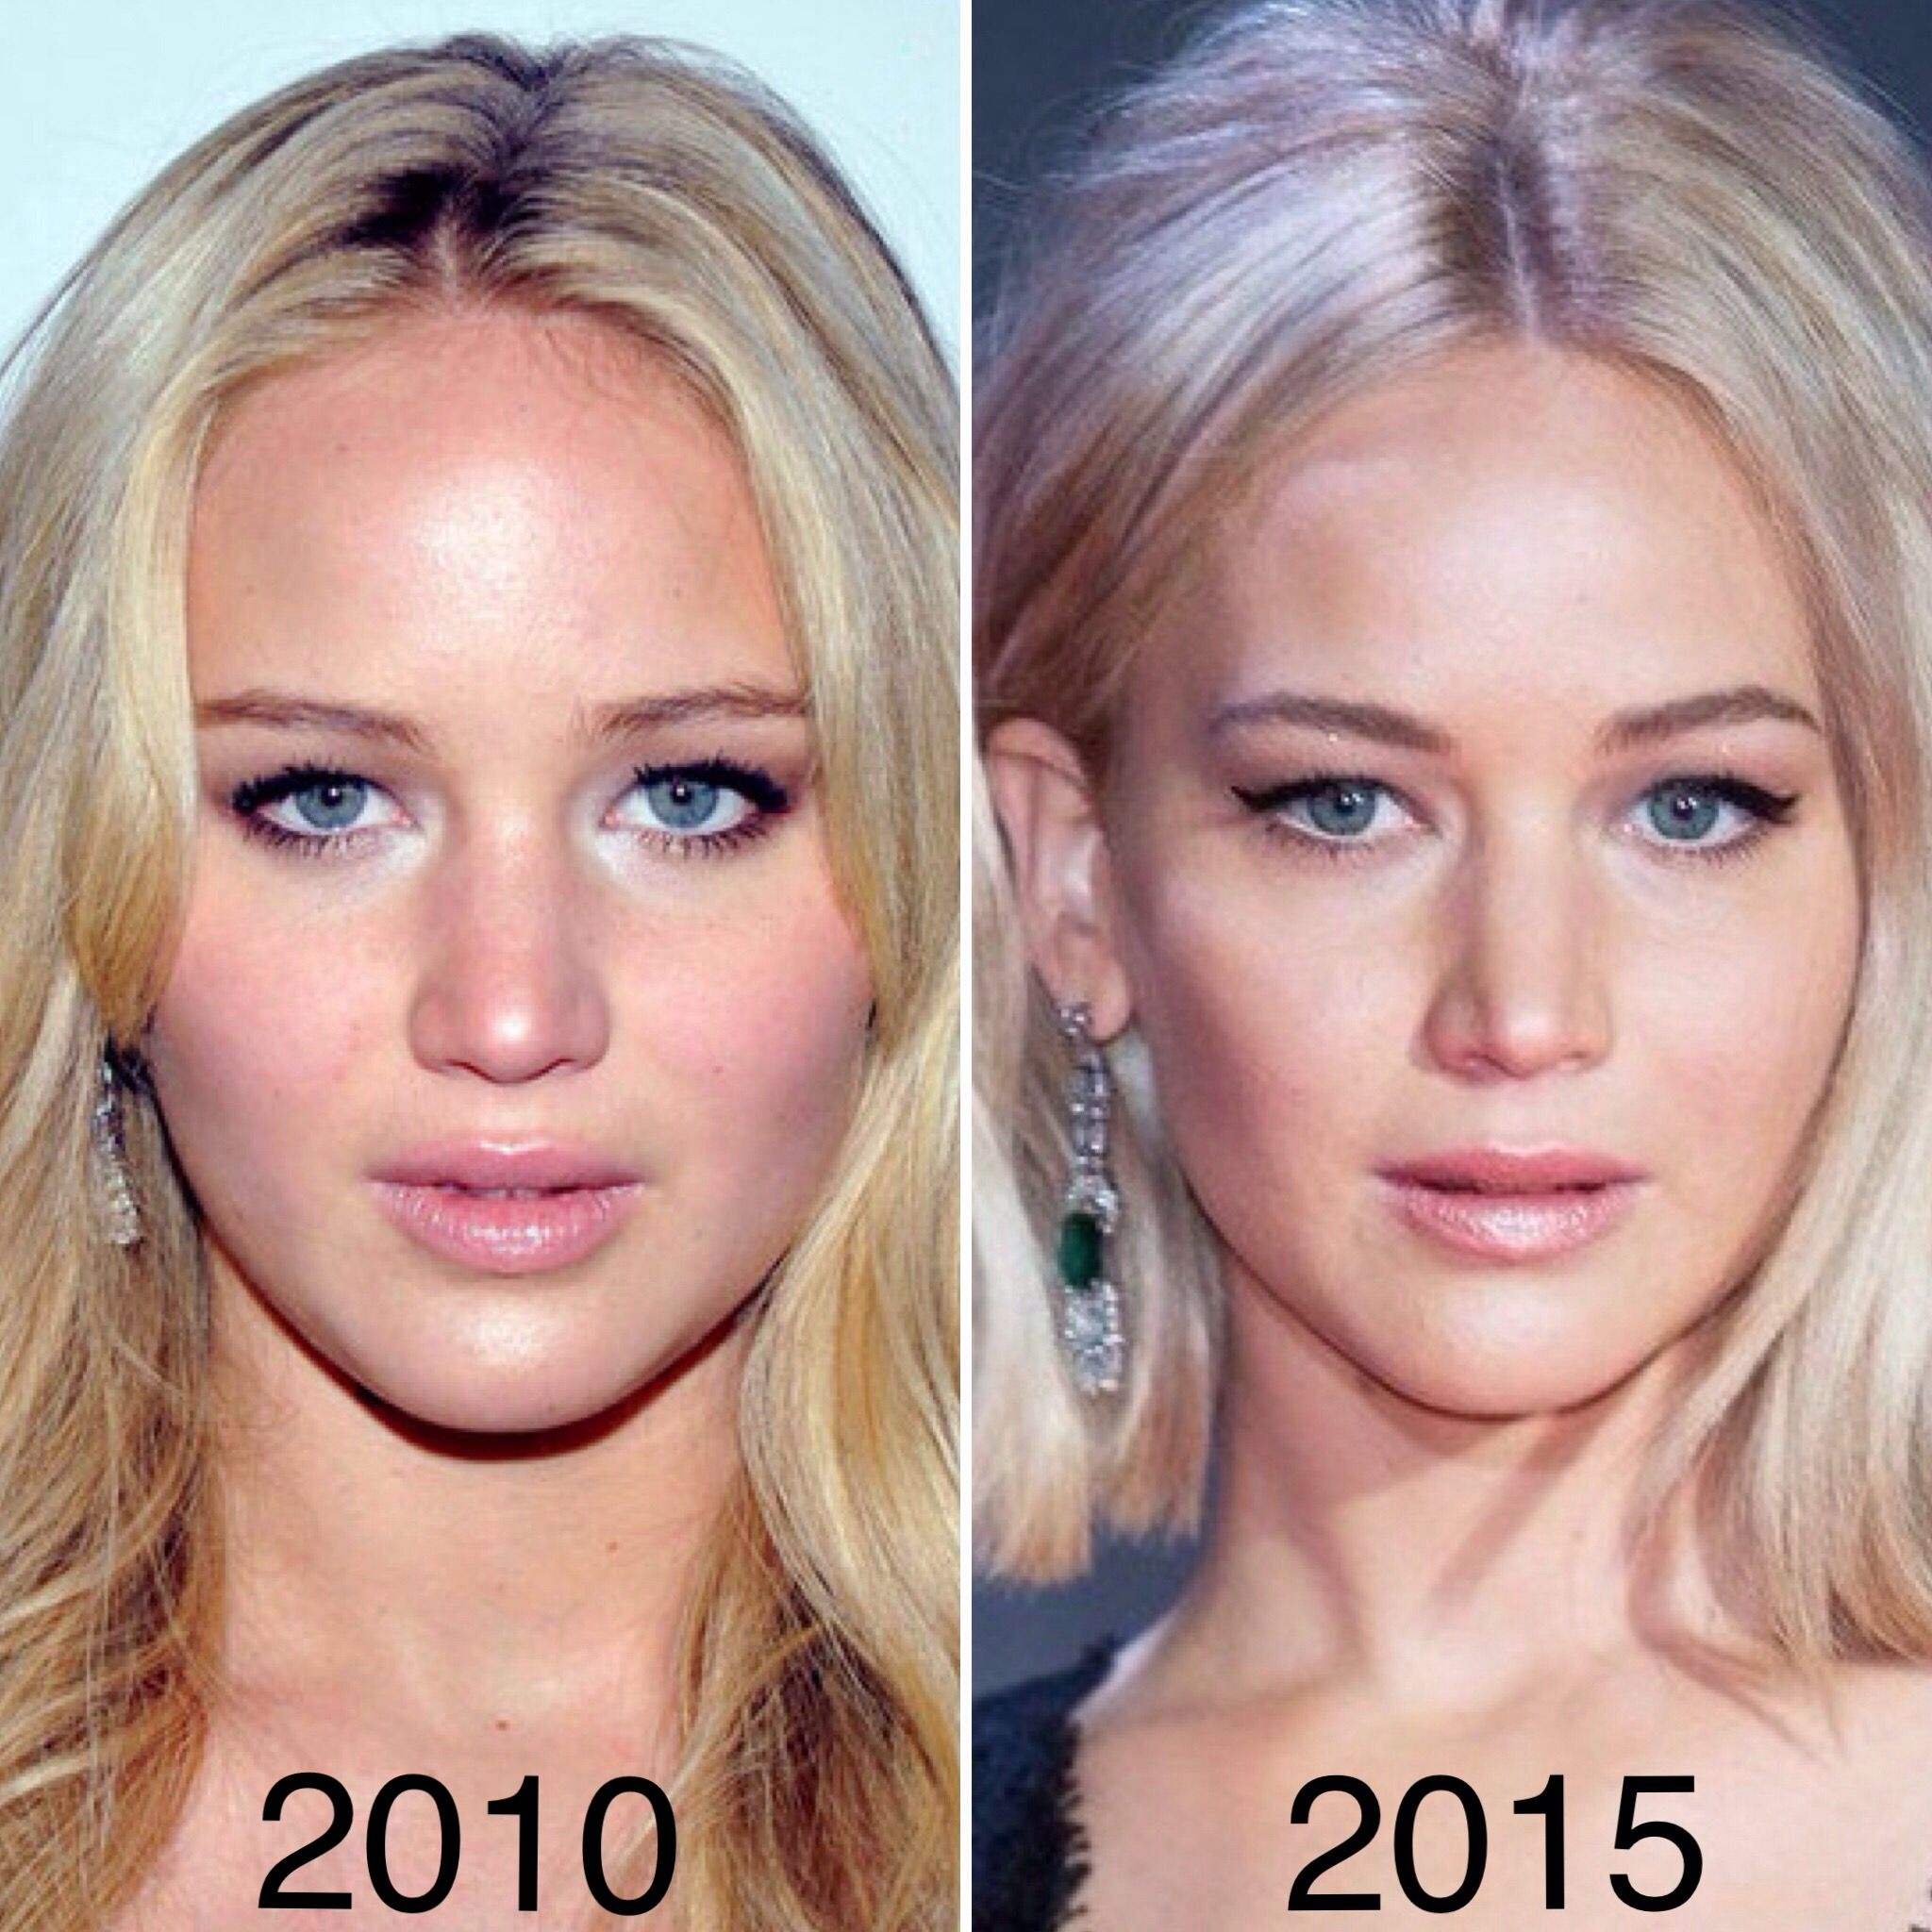 Jennifer Lawrence Did Mention That She Had A Nose Job Done Not